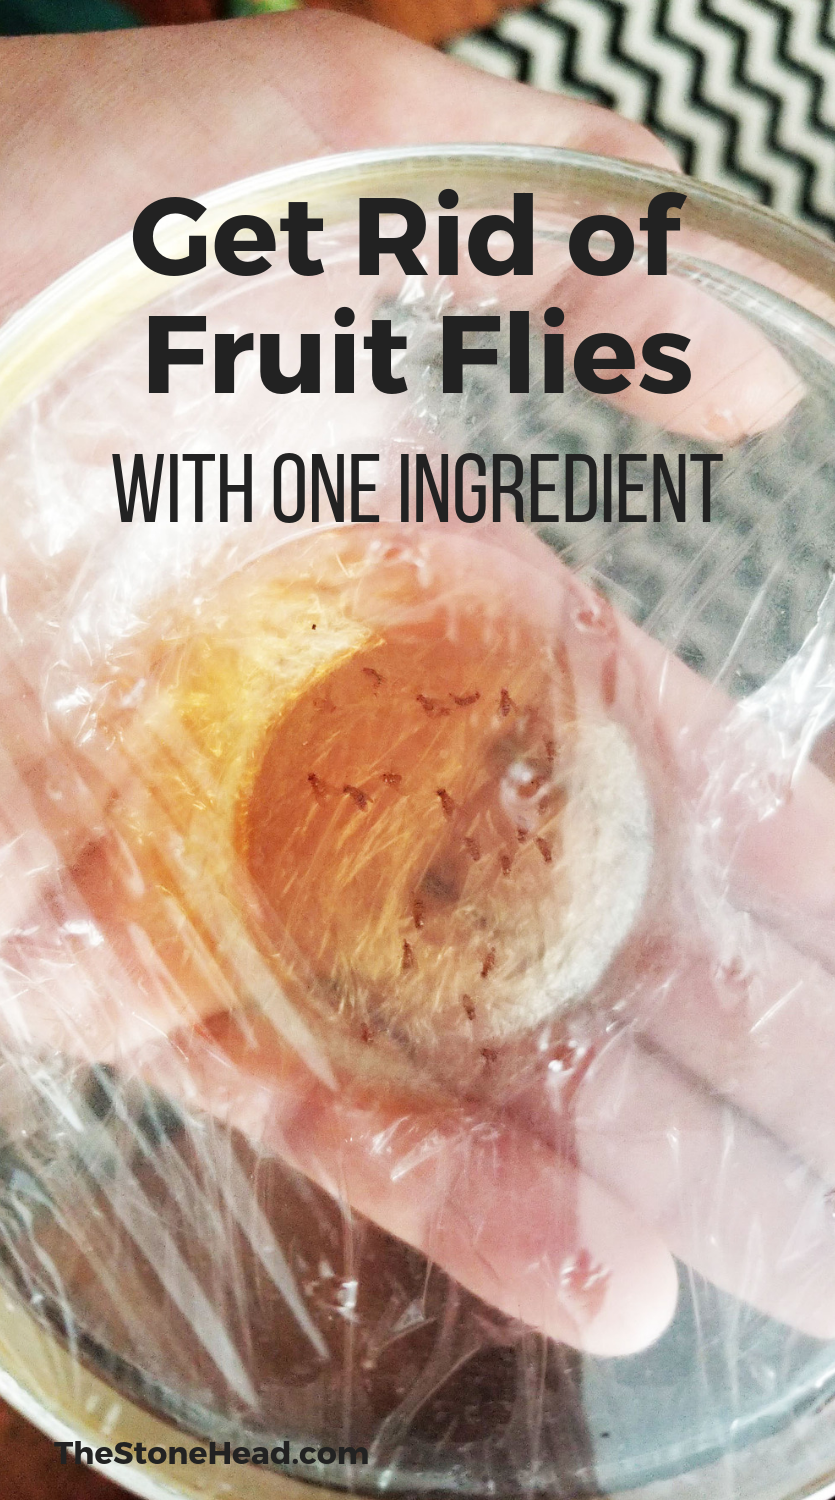 The infestation how to get rid of fruit flies naturally for the